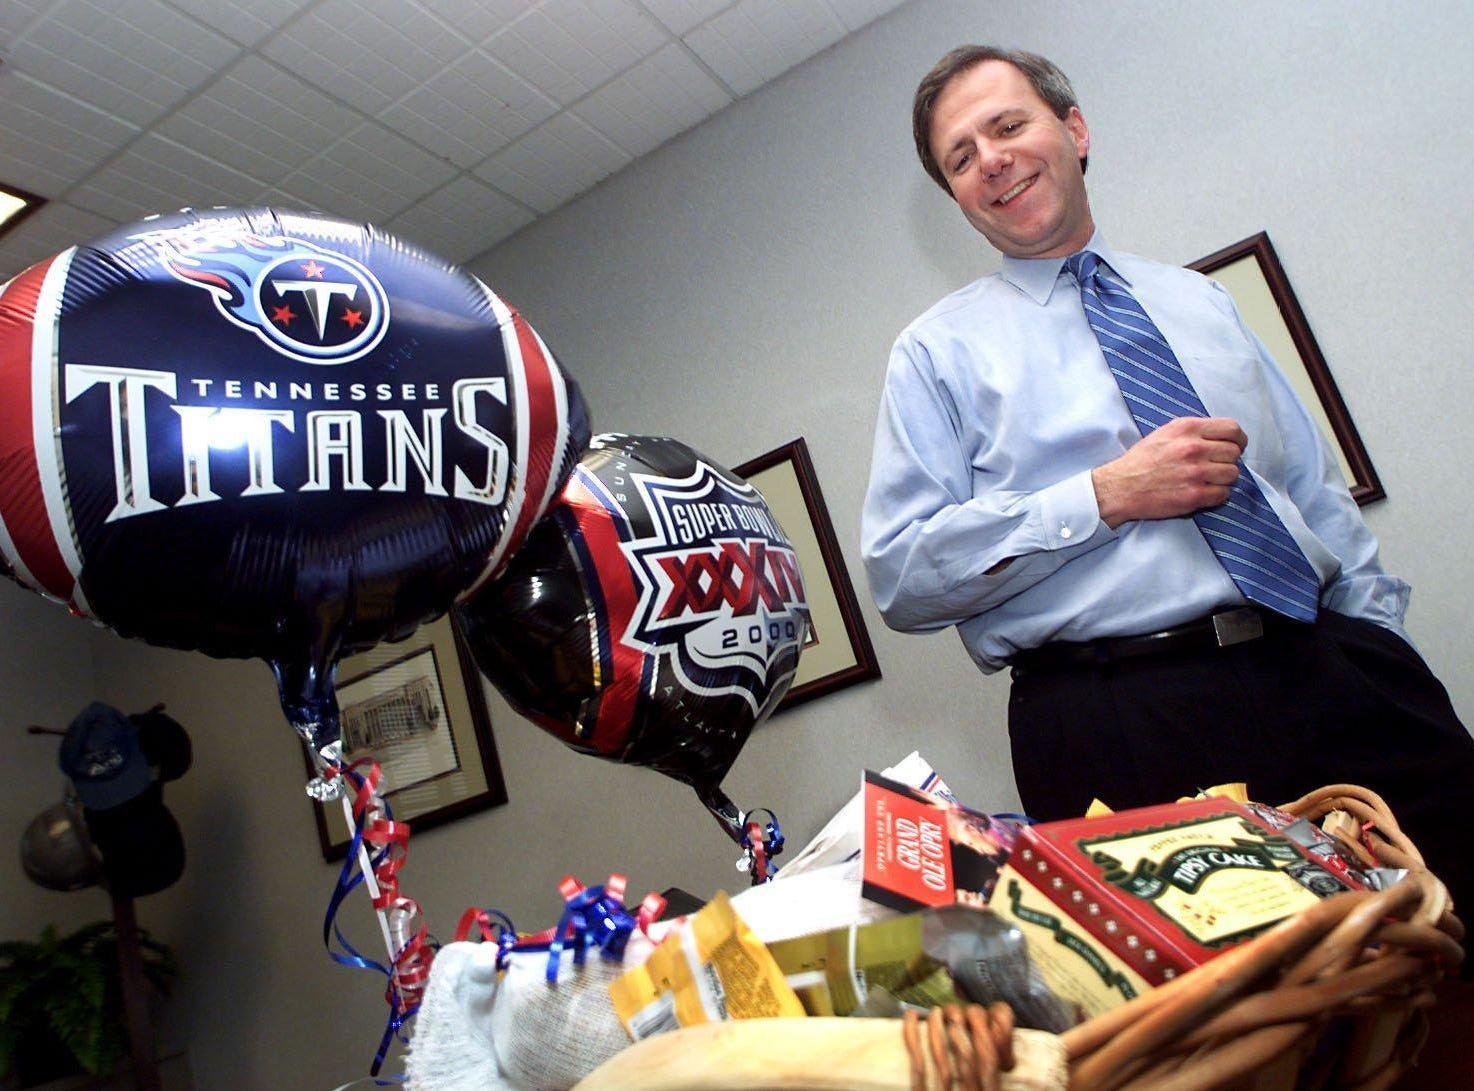 Nashville Mayor Bill Purcell looks over a basket of goodies in his office Jan. 25, 2000 that will be sent to the Mayor of St. Louis because the Tennessee Titans are playing St. Louis Rams in Super Bowl XXXIV.